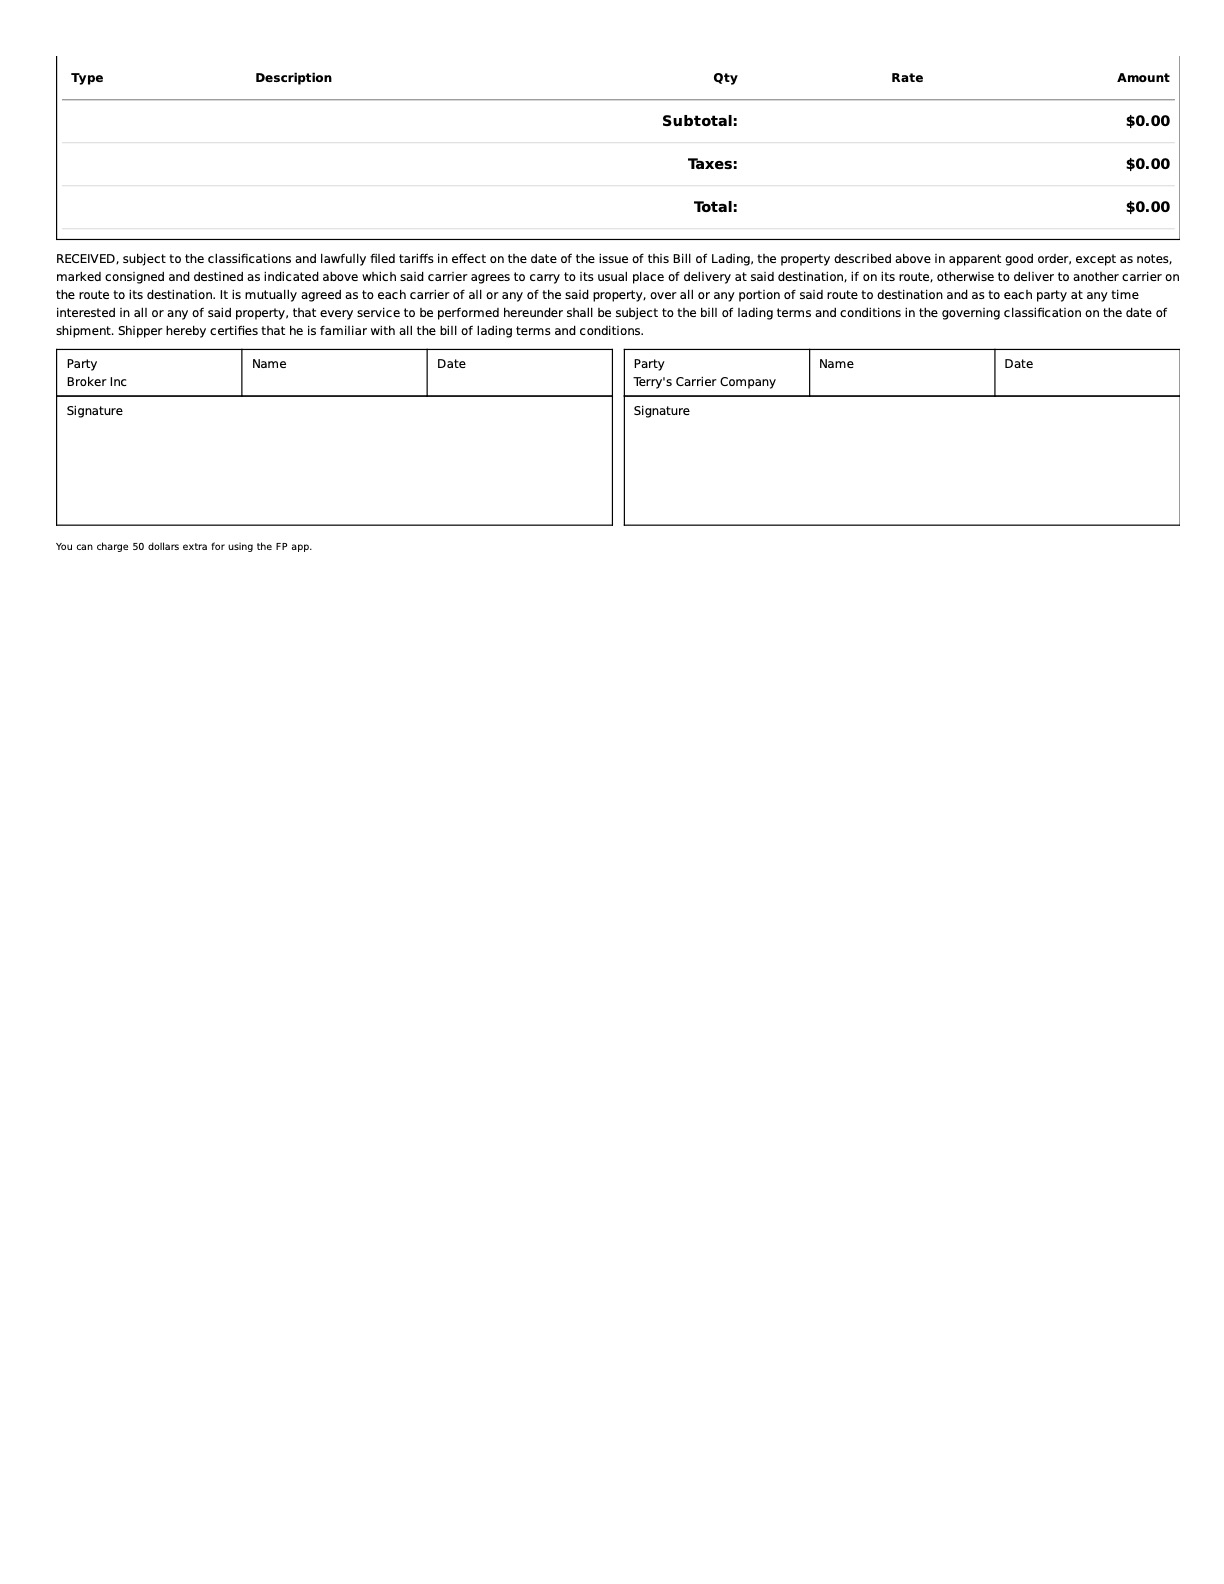 FreightPath TMS - Rate Confirmation paperwork automation